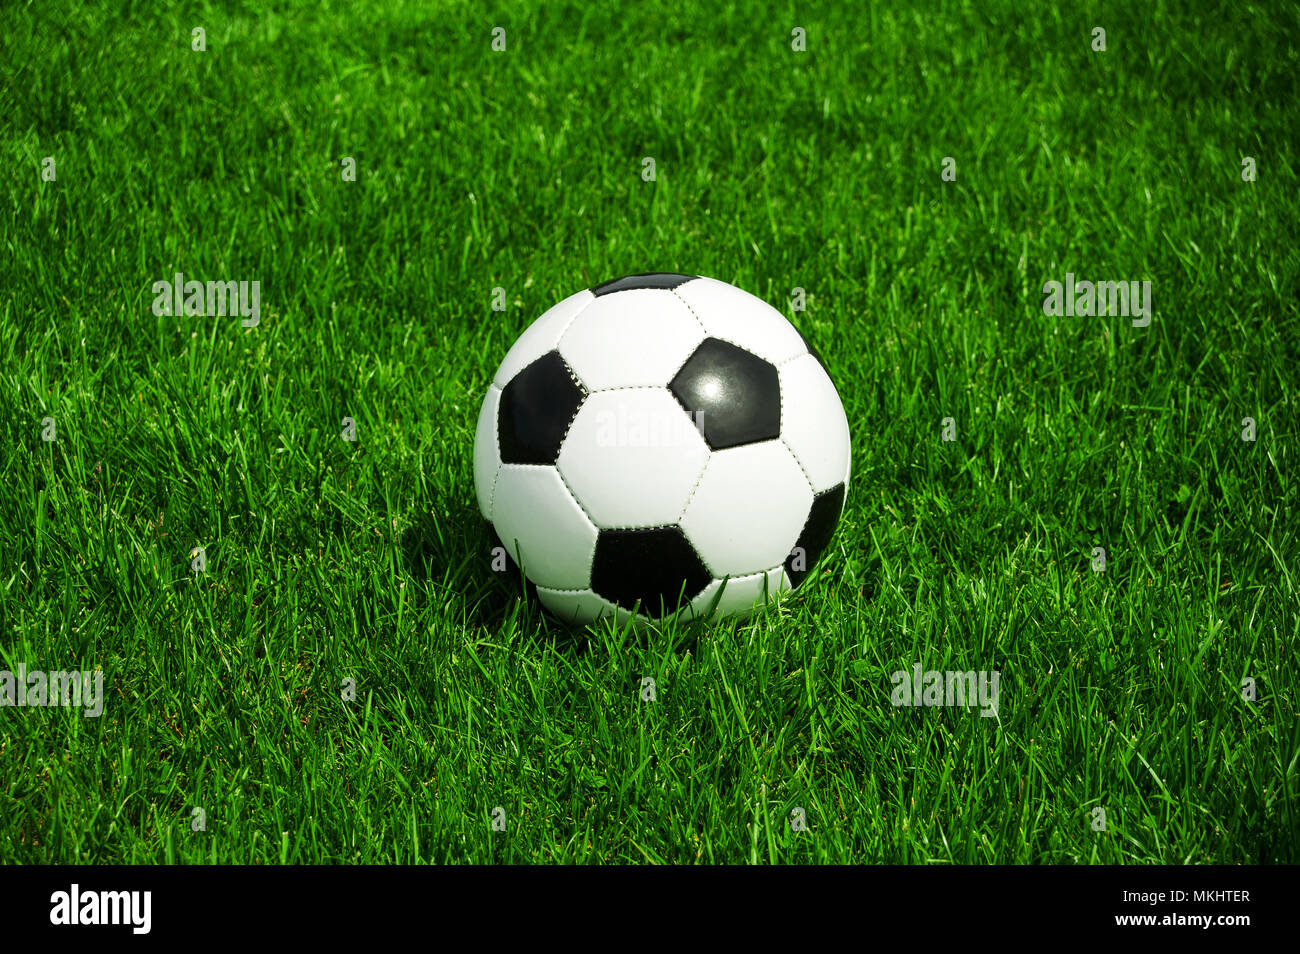 soccer ball black and white classic in the green grass alone with space - Stock Image